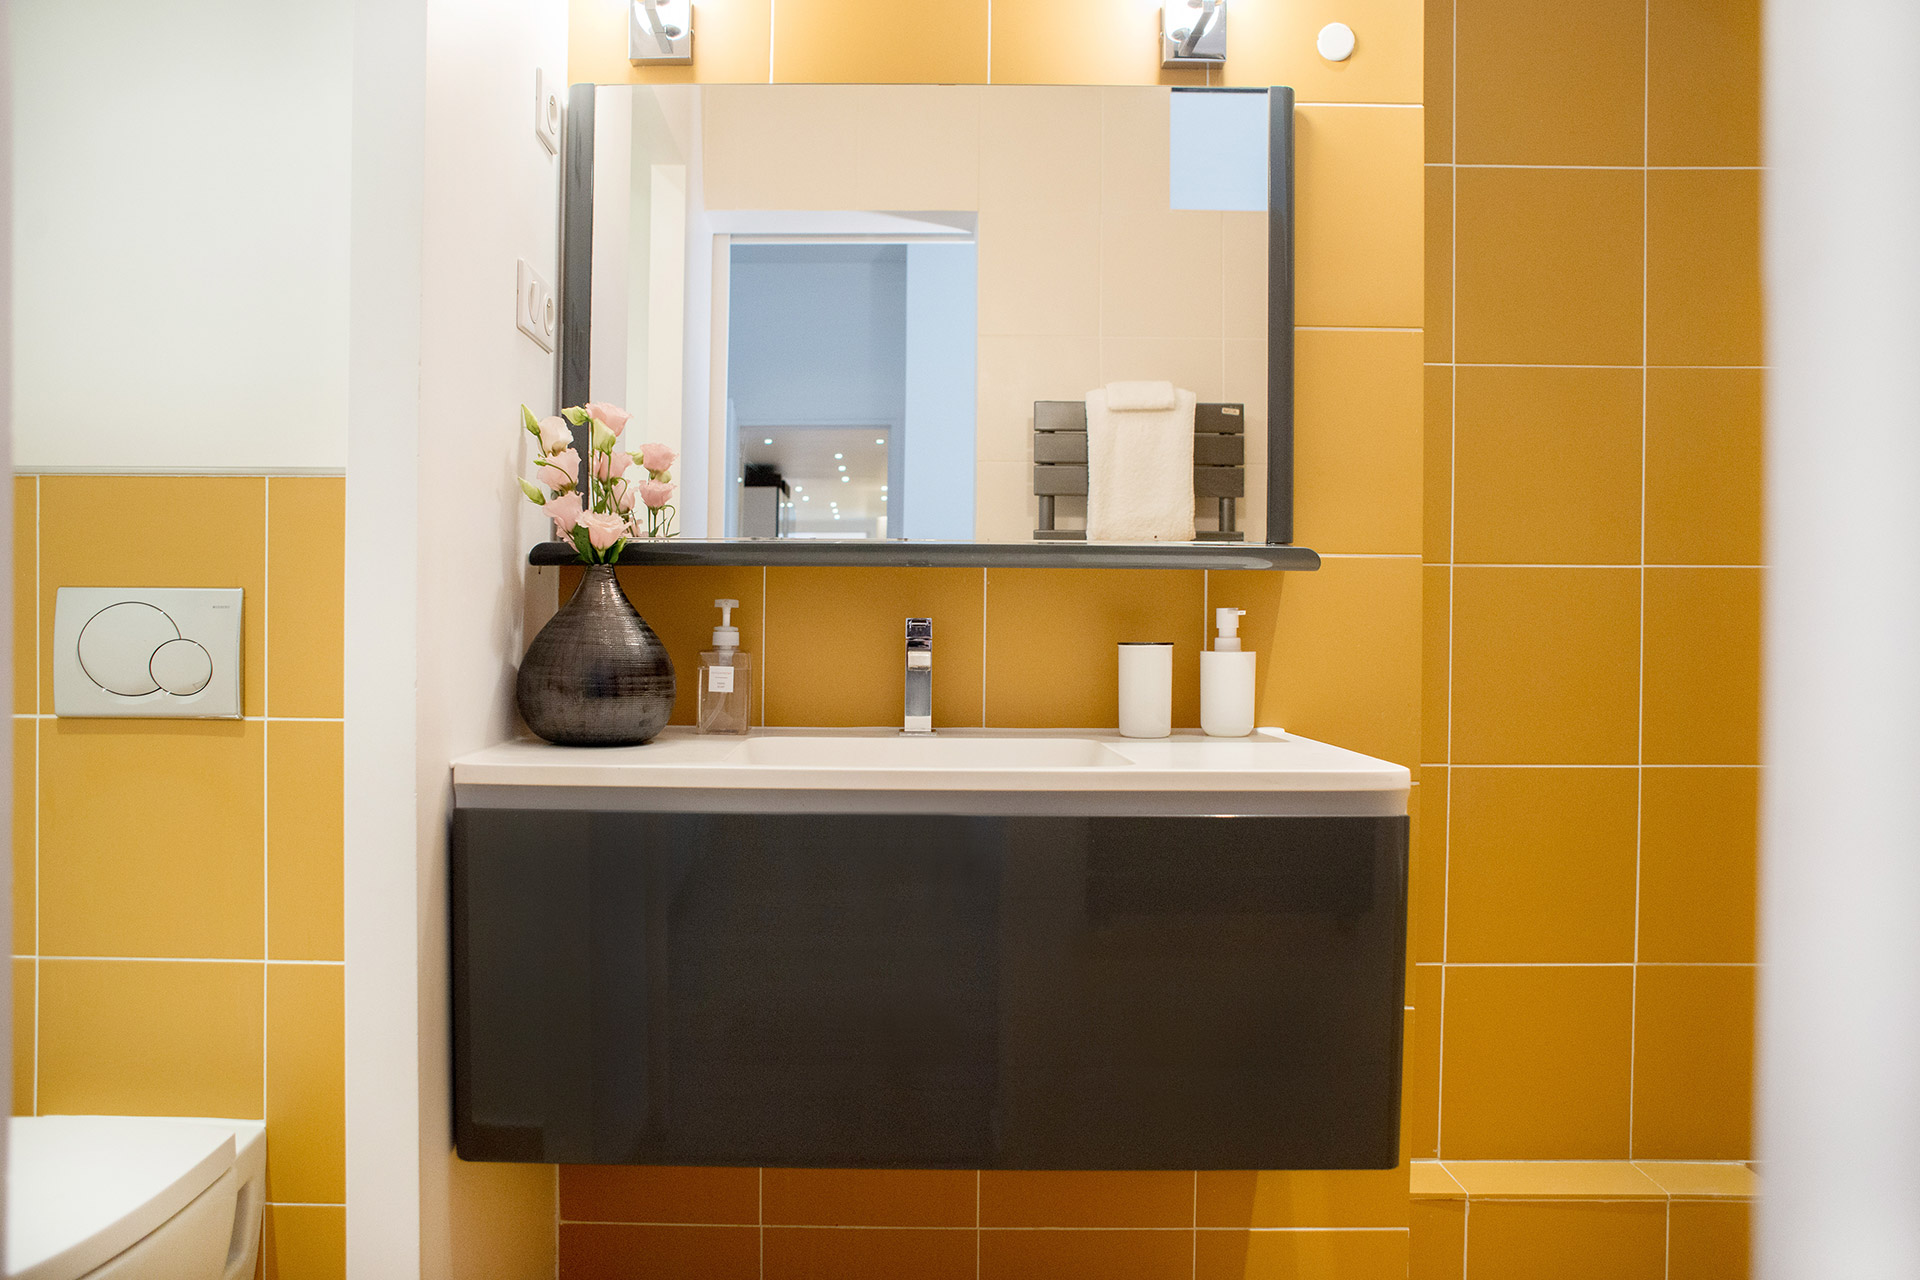 Sink in en suite bathroom 1 of the Monplaisir vacation rental by Paris Perfect